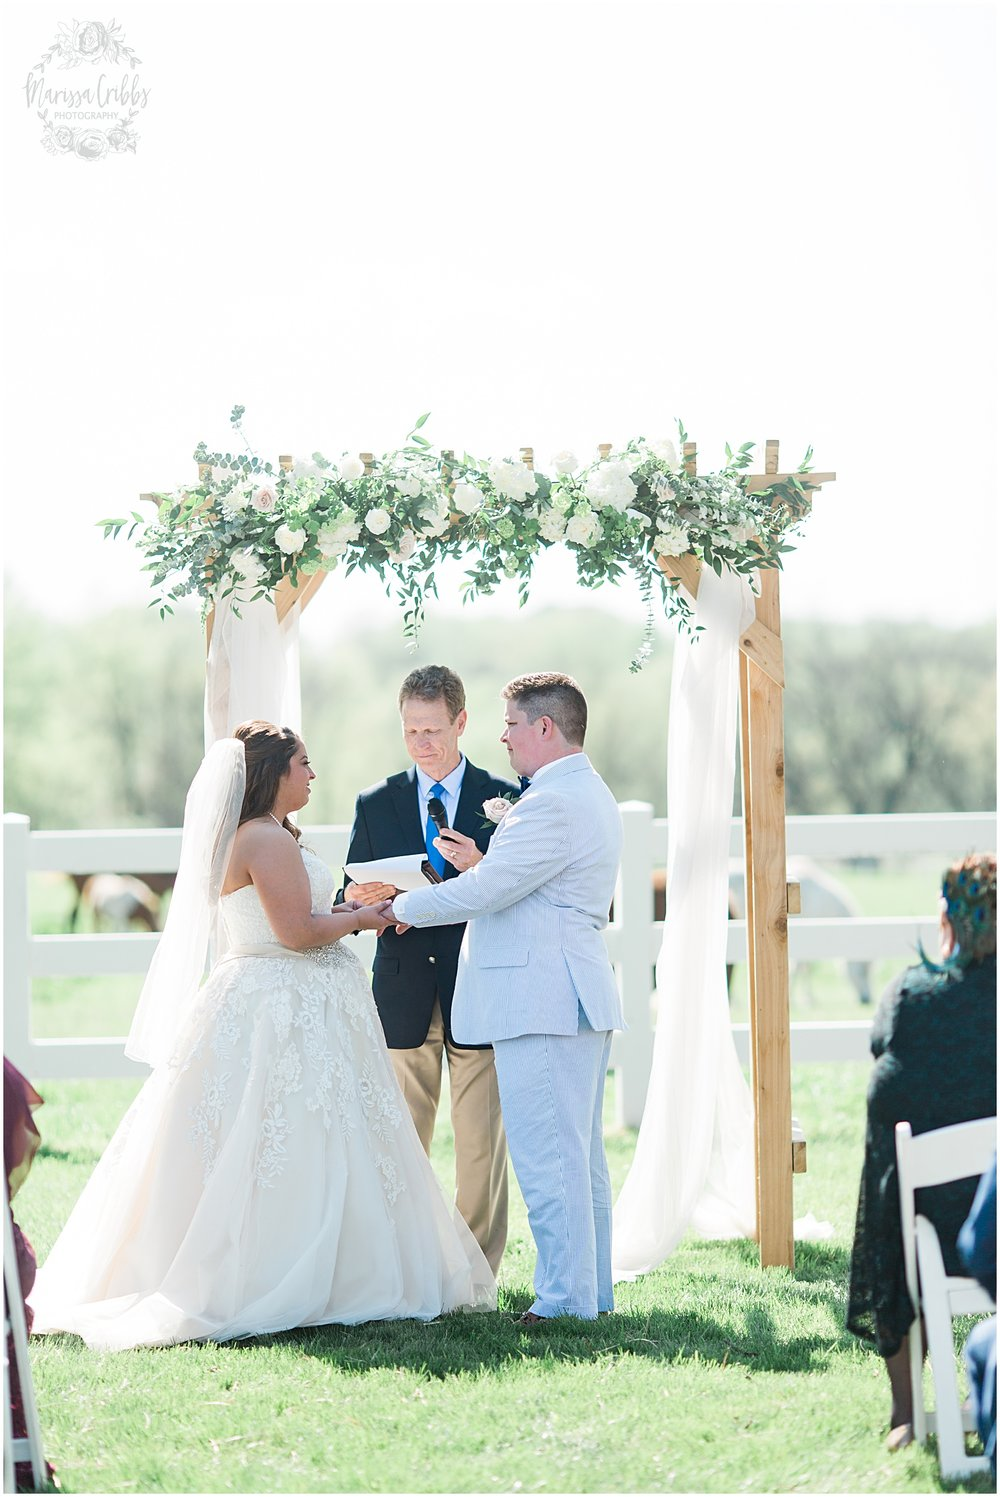 ANDREA & MICHAEL WEDDING | HICKORY CREEK RANCH | MARISSA CRIBBS PHOTOGRAPHY_4873.jpg